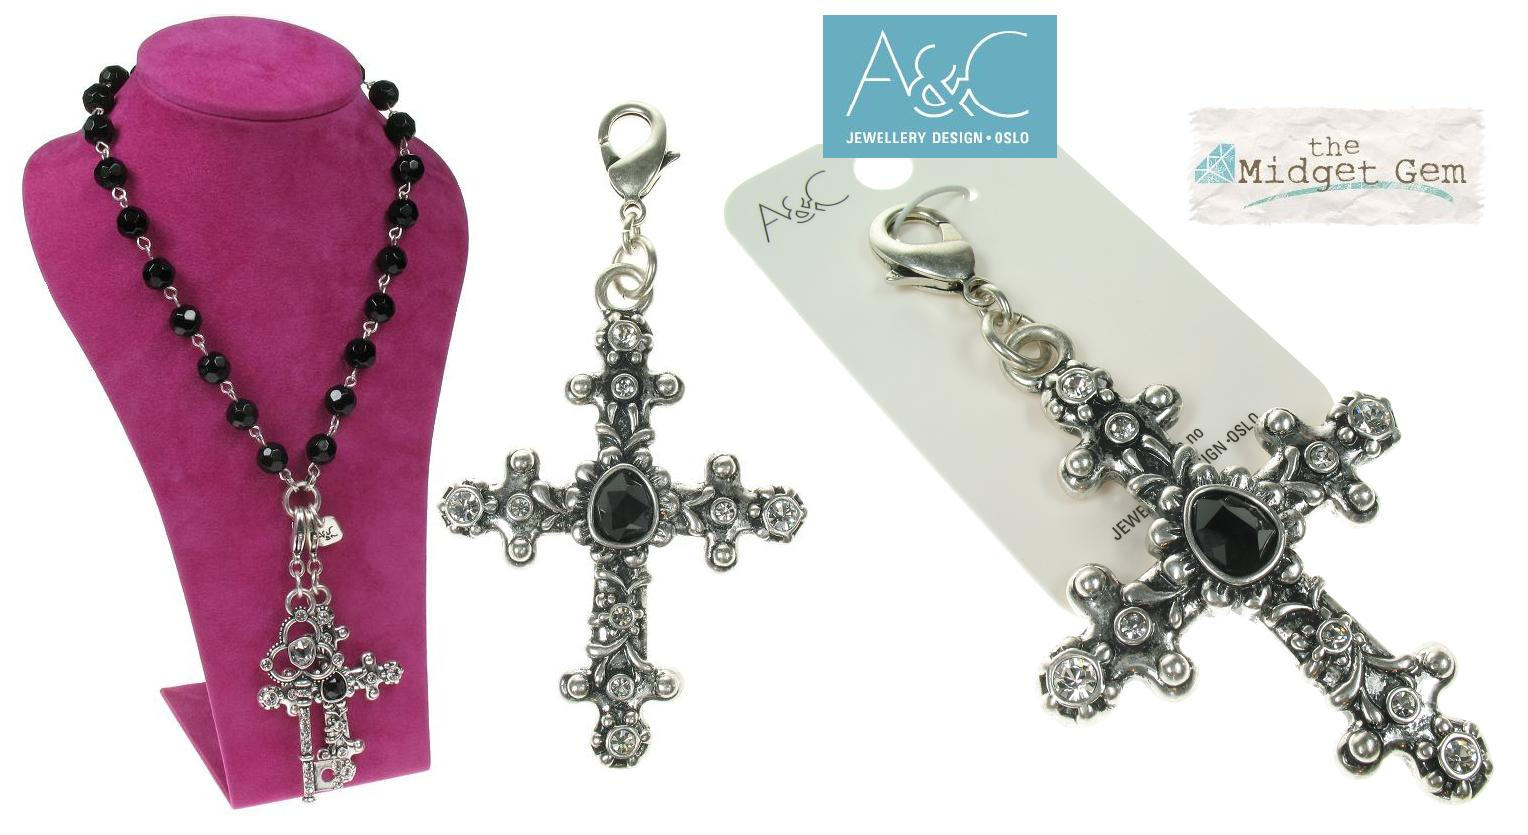 A & C - Large Ornate Swarovski Studded Gothic Cross Clasp-on Charm Silver Plate